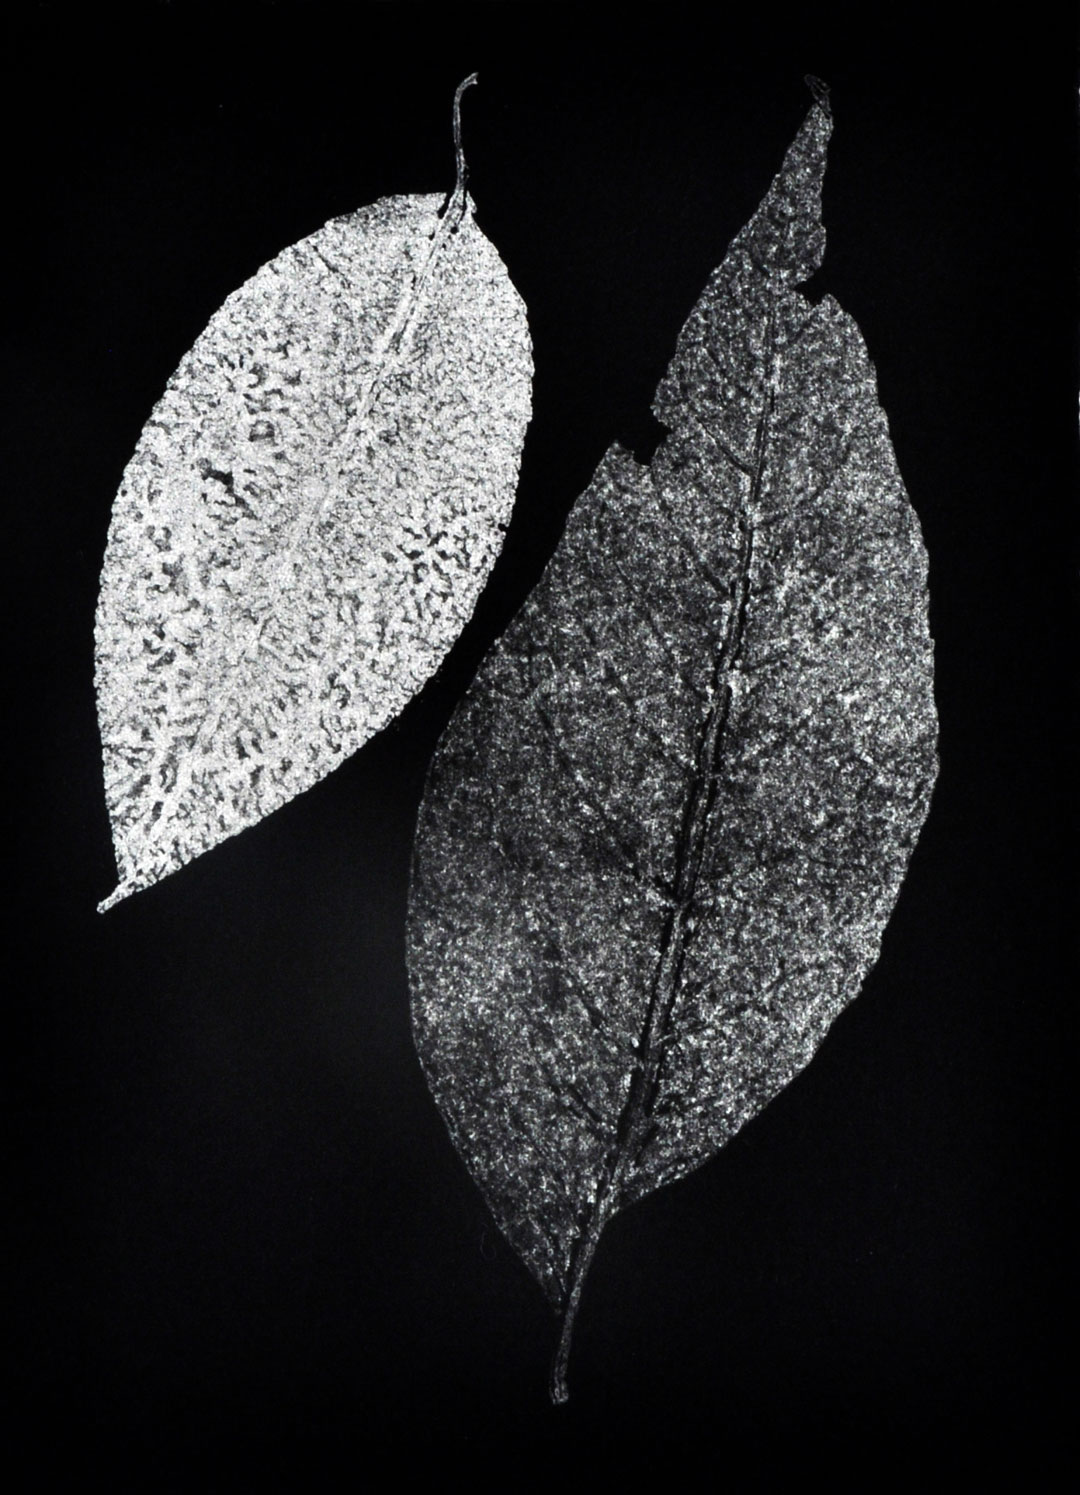 """Monotype, 2014, Christine Mauersberger dried and flattened Leaves, silver ink, black somerset paper. 5 1/2"""" x 7 1/2"""""""